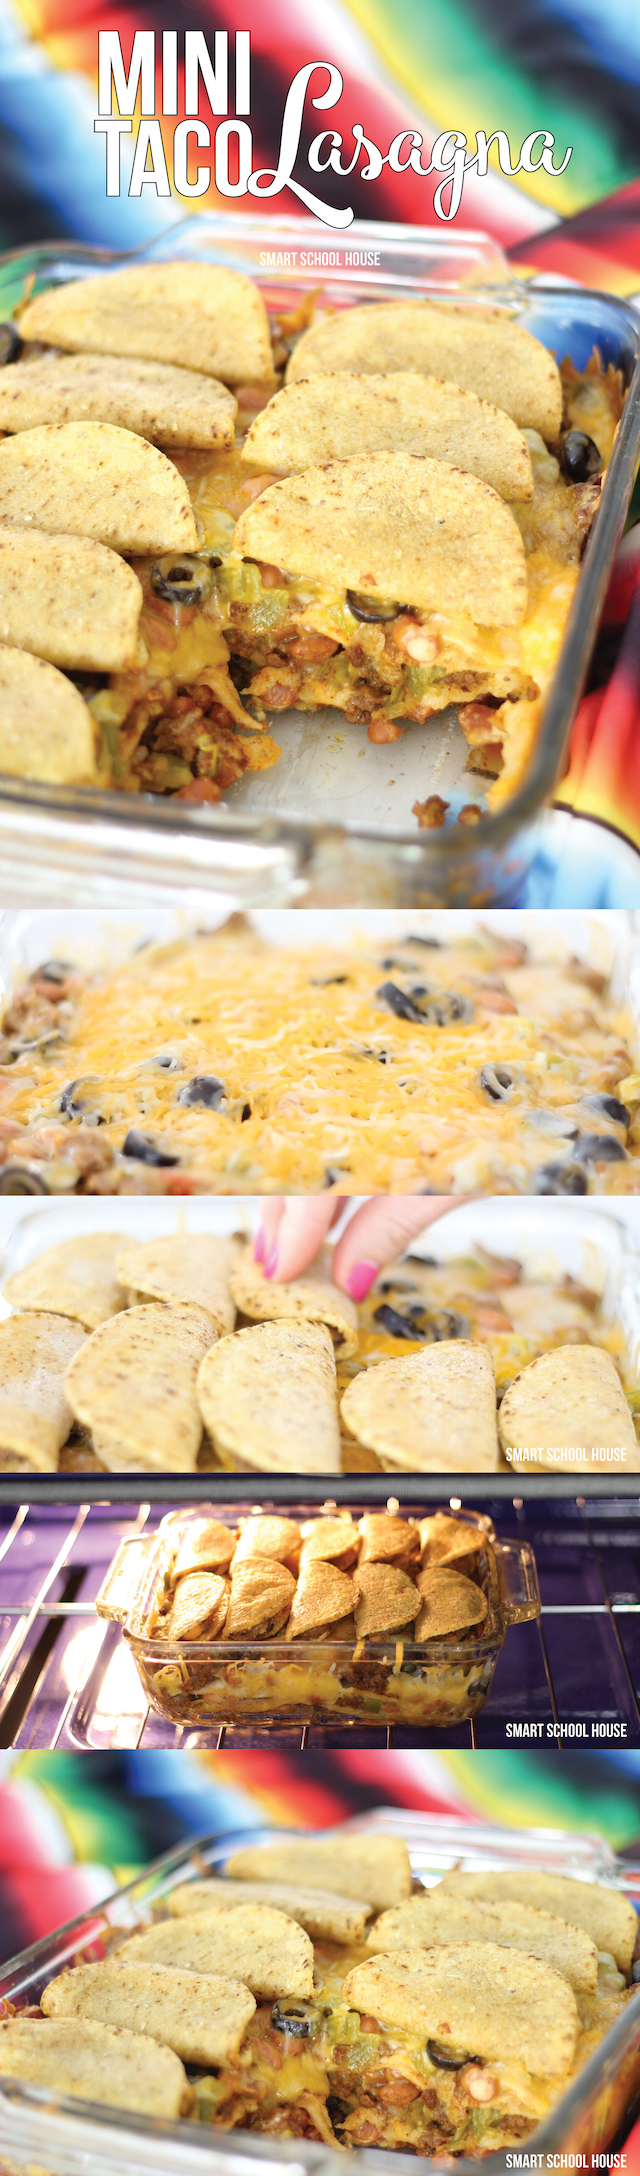 Mini Taco Lasagna - easy Mexican dinner recipe idea (or appetizer for Cinco de Mayo!). Layers of tortillas, beef, cheese, beans, chiles, and mini tacos!